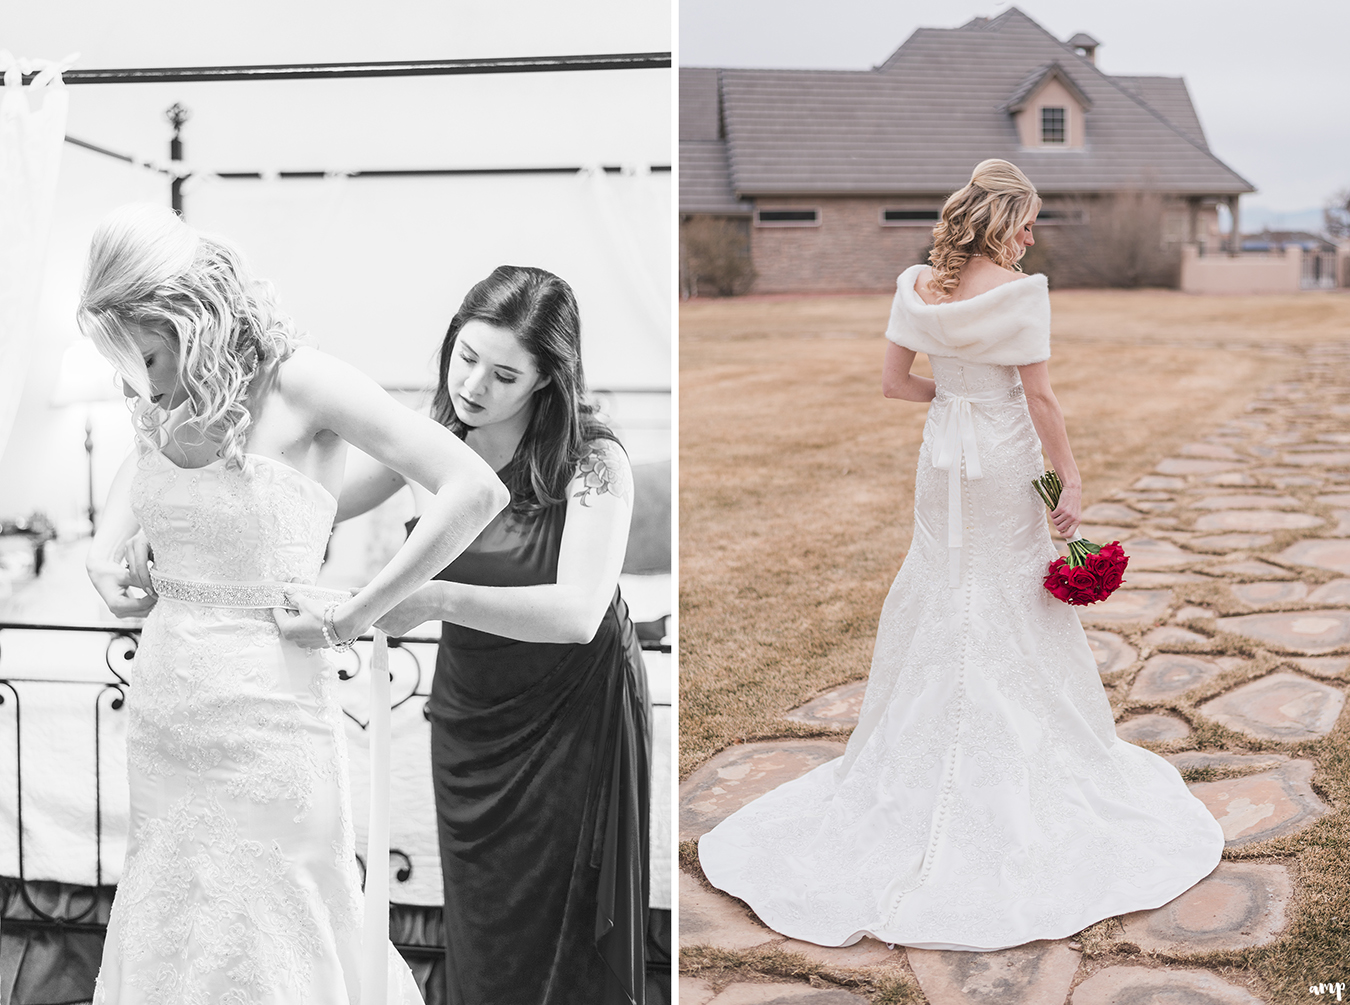 Maid of honor helps bride into dress at Two Rivers Winery